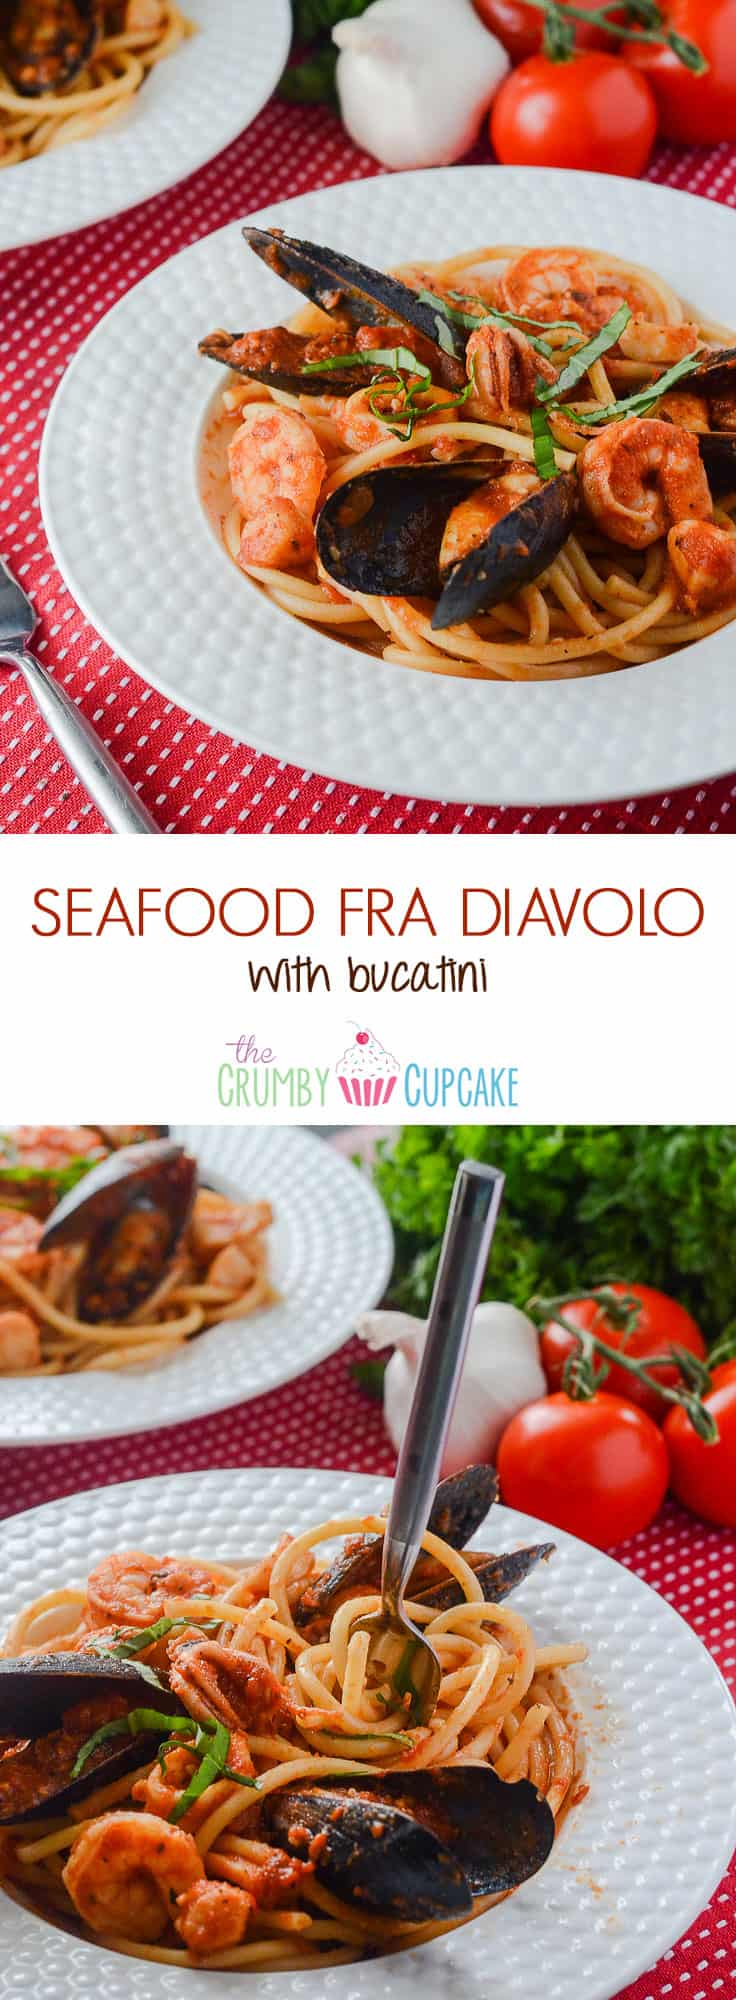 Pasta crowned with an array of fresh seafood that's bursting with spicy Italian flavor and lots of garlic - this Seafood Fra Diavolo with Bucatini is a spicy seafood spaghetti extravaganza!